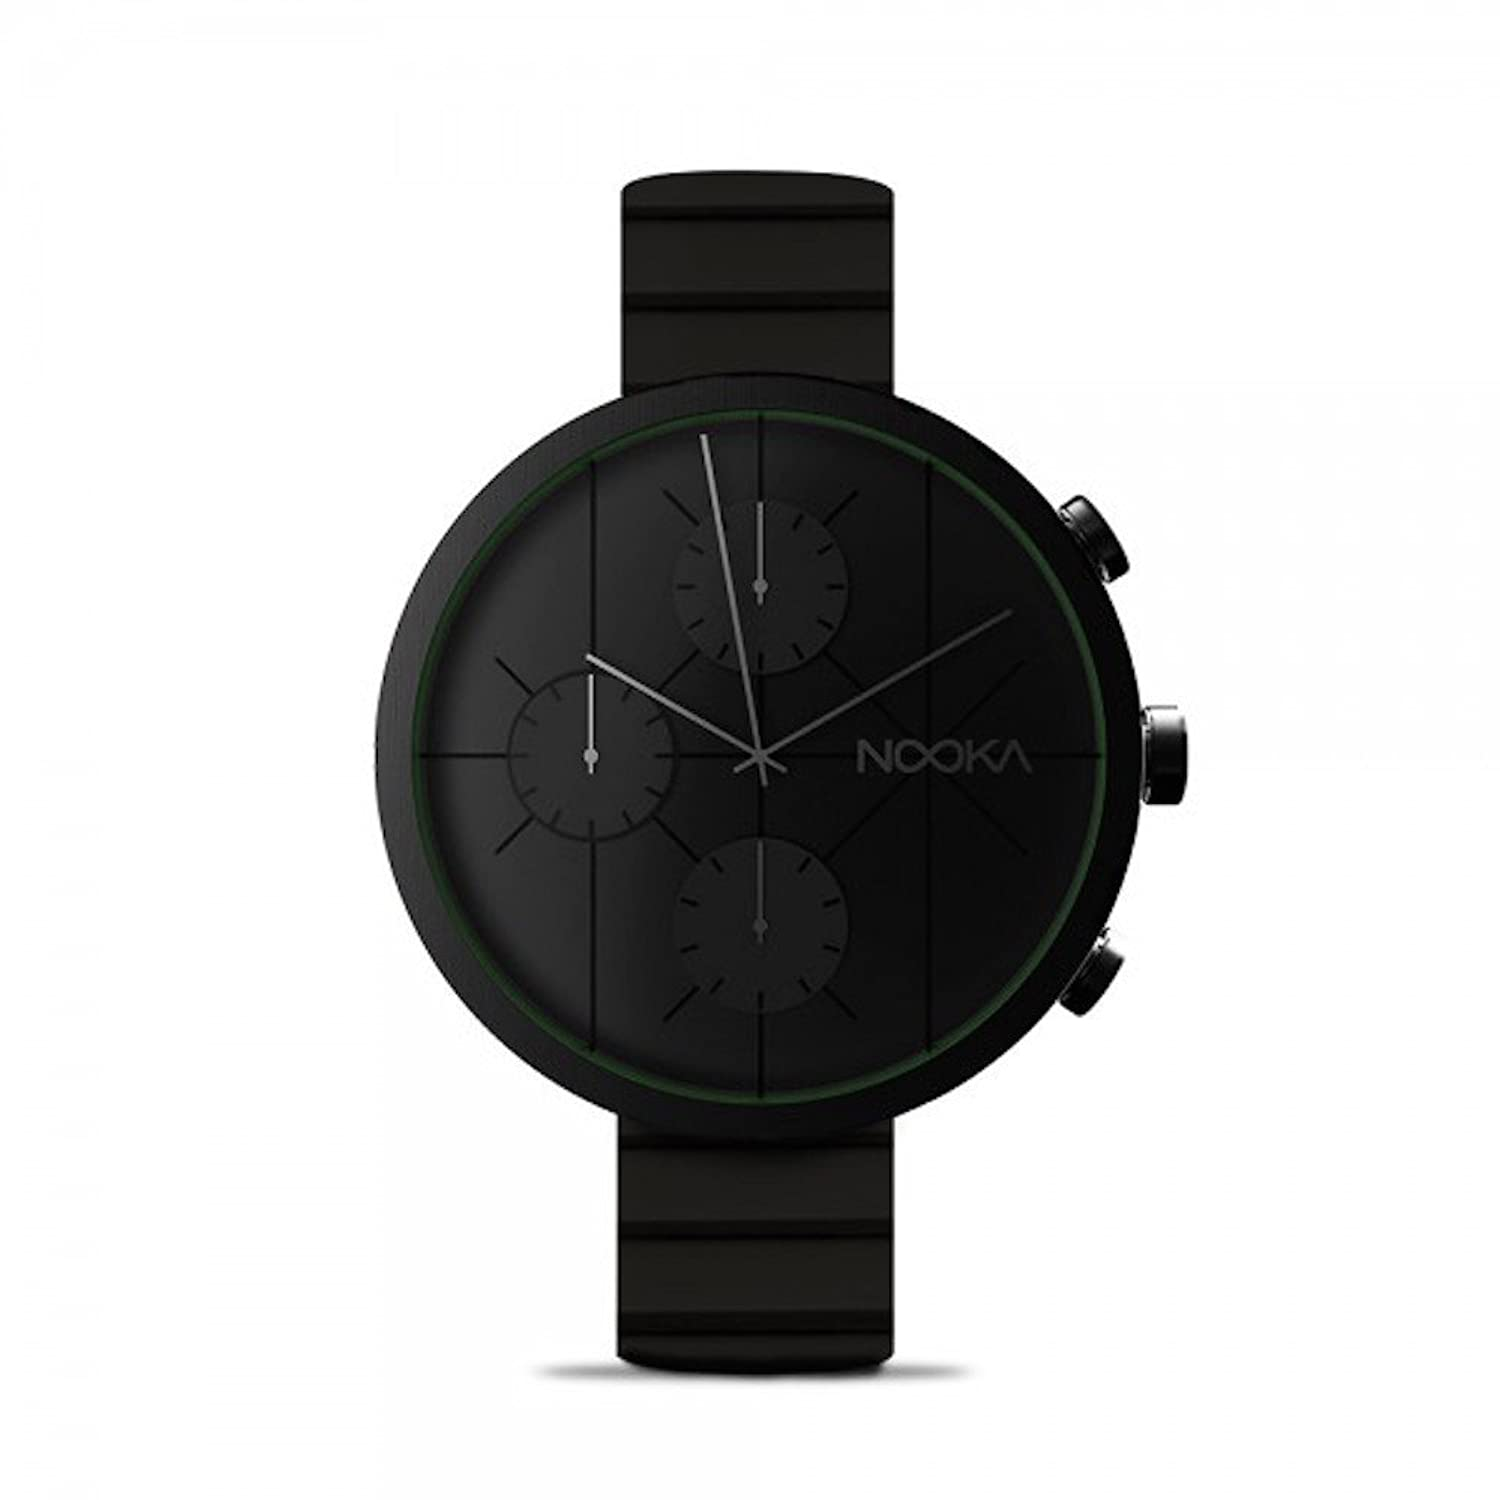 NOOKA NOOKRONO Midnight Chronograph Silikonband 48mm Big Watch